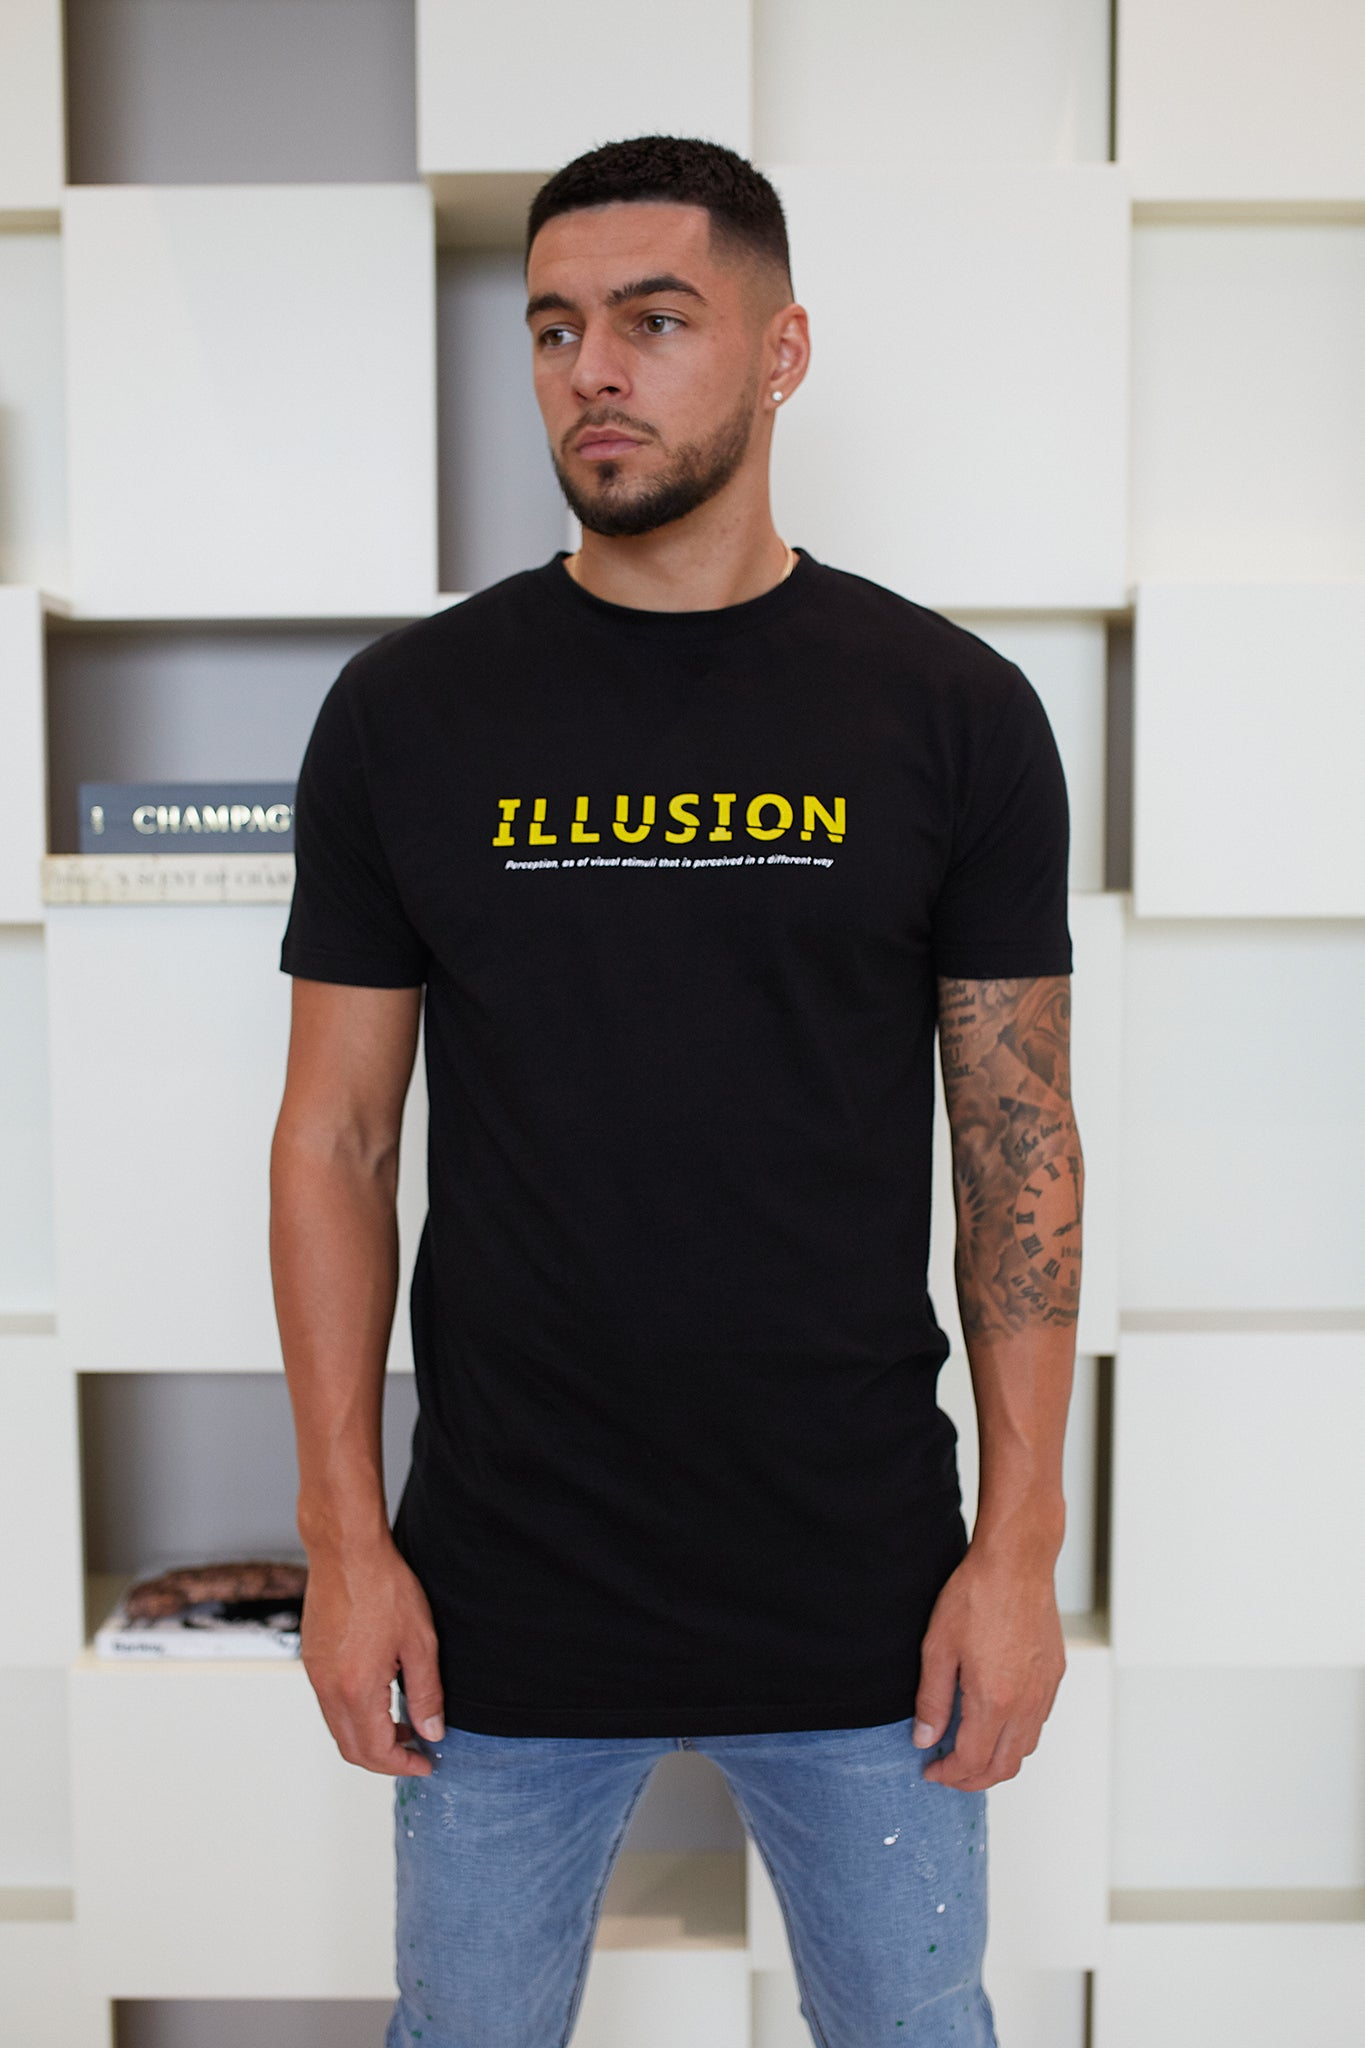 BLACK REFRACTED T-SHIRT - Illusion Attire